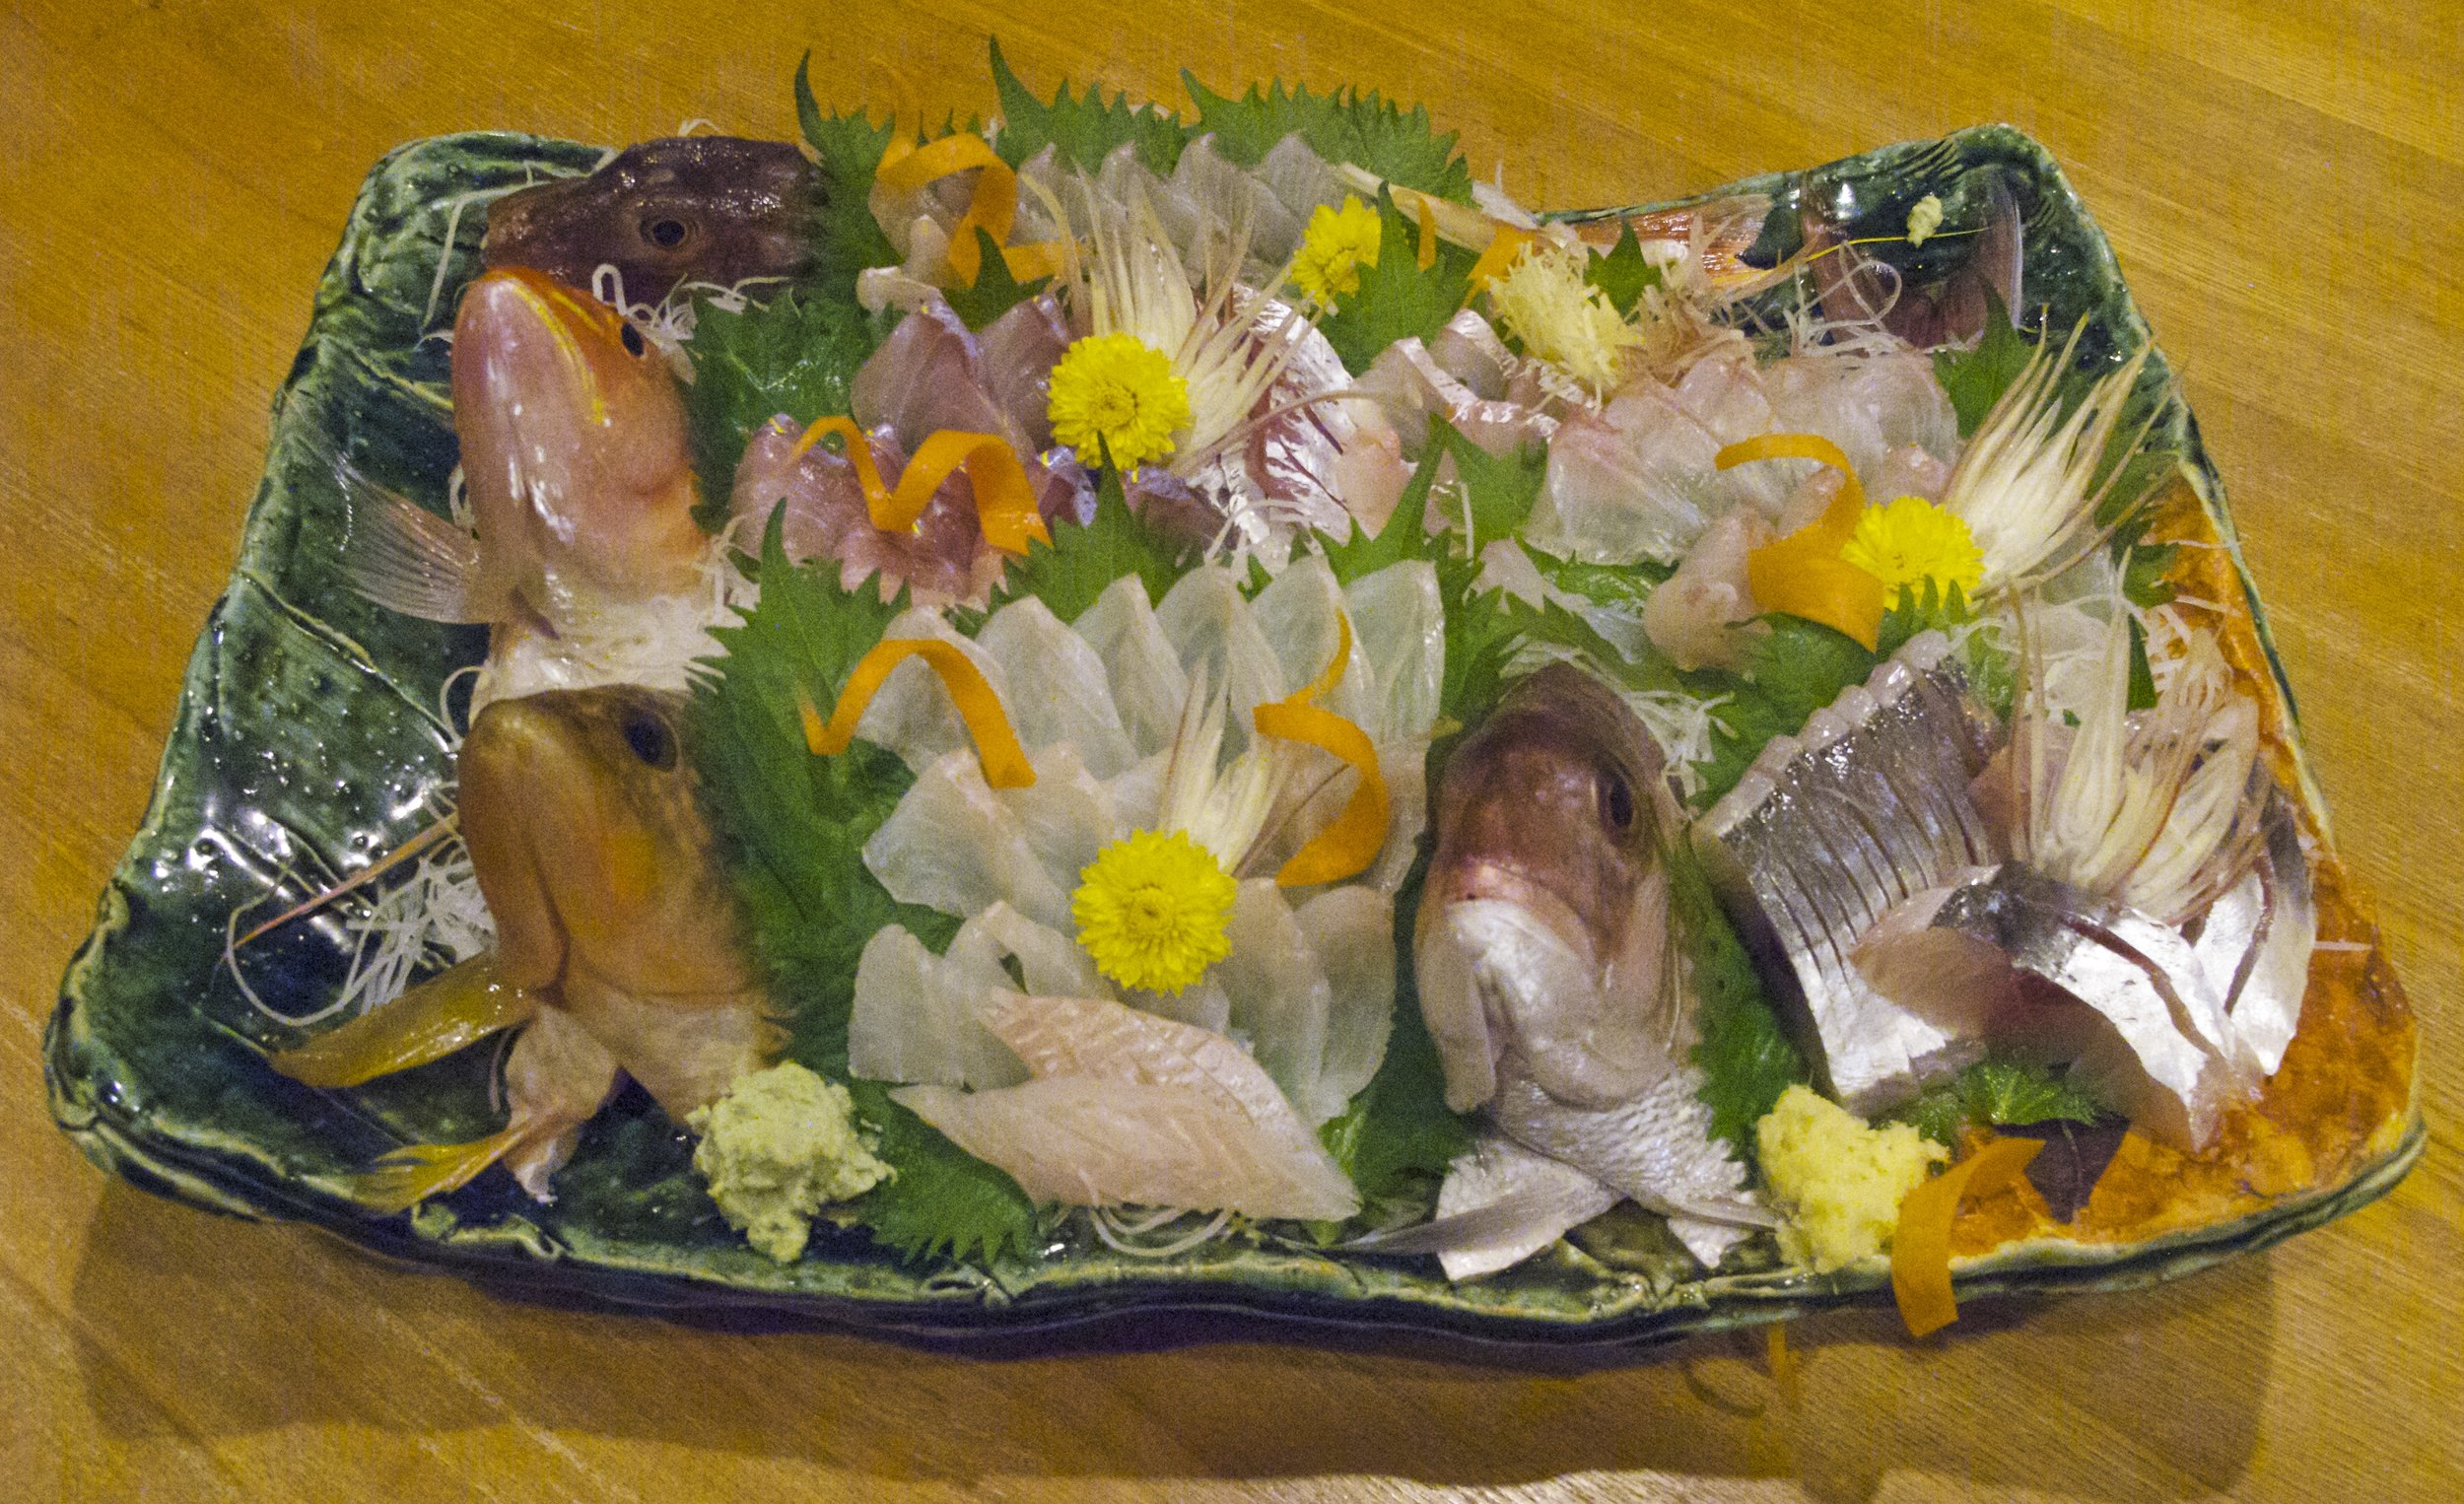 A summer platter of sashimi that includes red gunner ( hobo ), sharp-tooth snapper ( itoyori ), red-spotted grouper ( kijihata ), tilefish ( amadai ), and Japanese horse mackerel ( aji ). The still glistening eyes of the fish indicate their freshness.